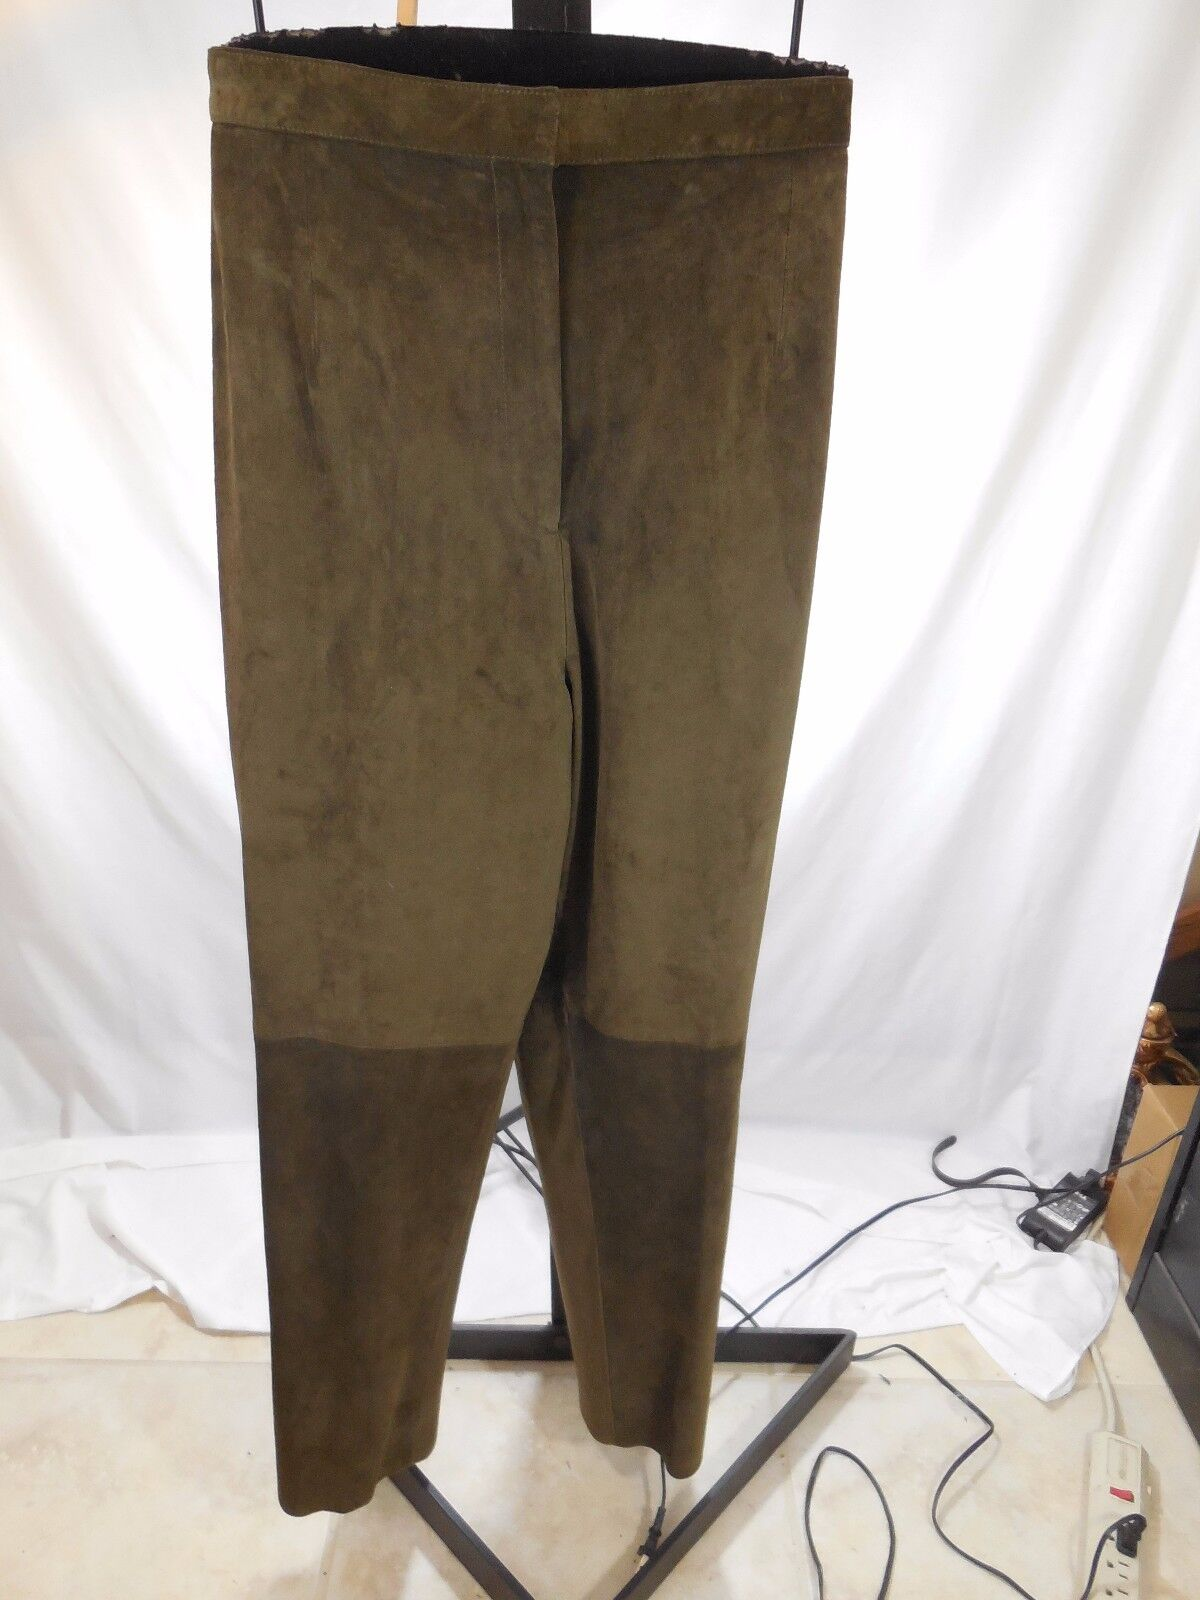 B20 WOMENS BROWN 100% SUEDE LEATHER PANTS INTERNATIONAL CONCEPTS INC PLUS 22W